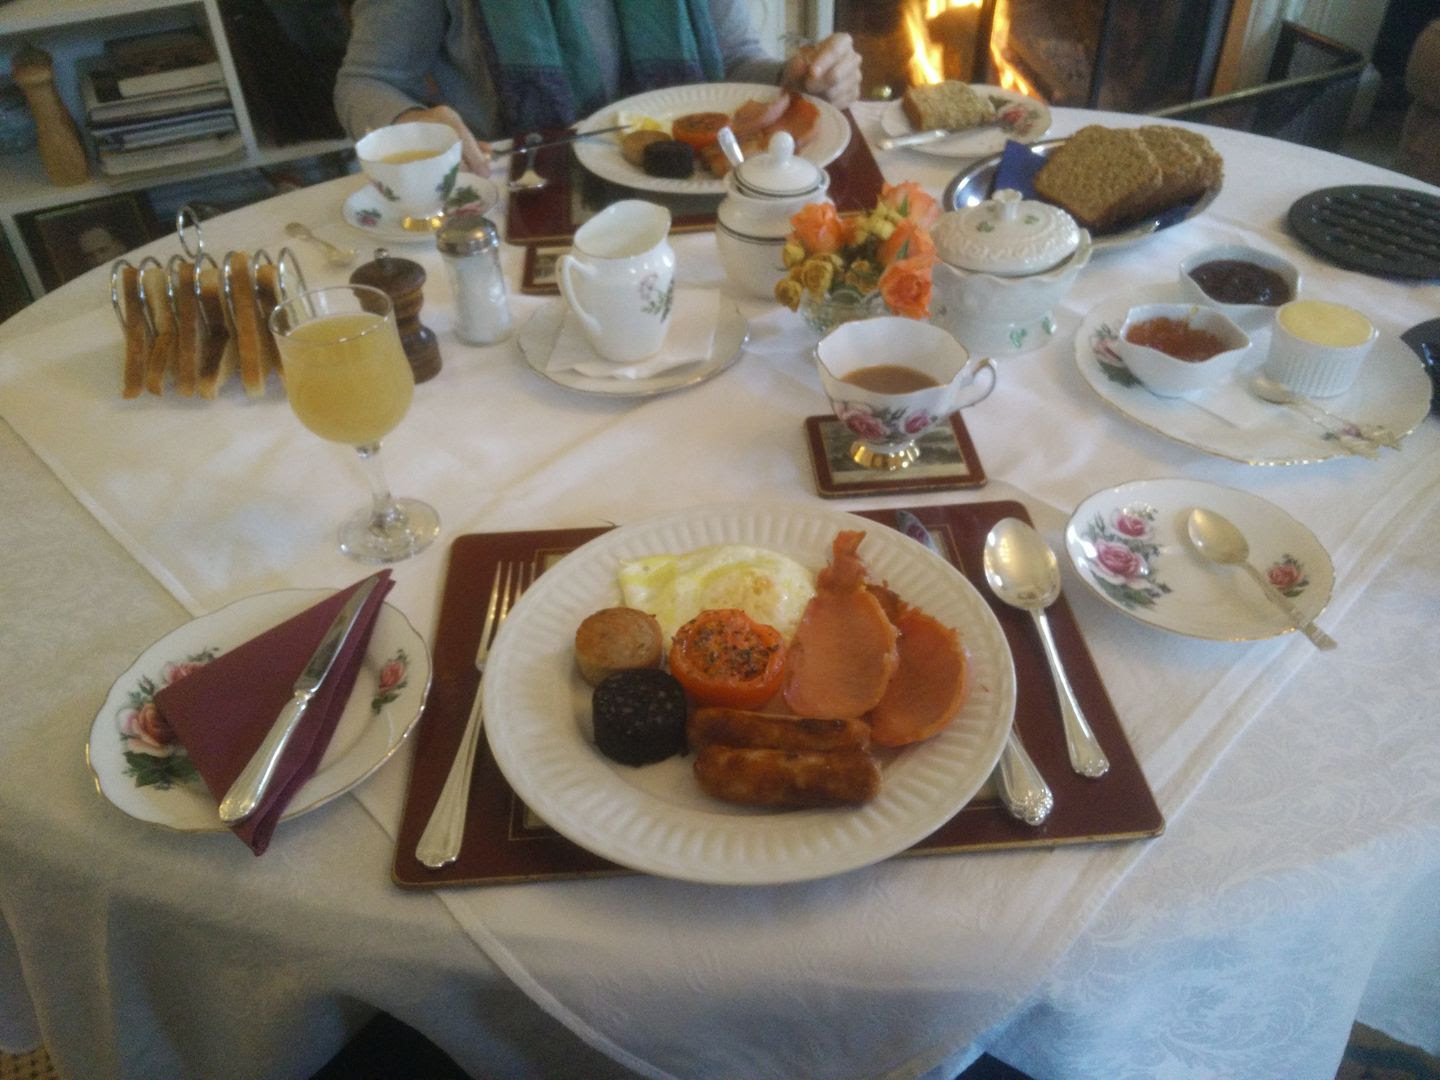 Irish Breakfast with Black Pudding photo IMG_20151016_085229_zps2rfnyncf.jpg